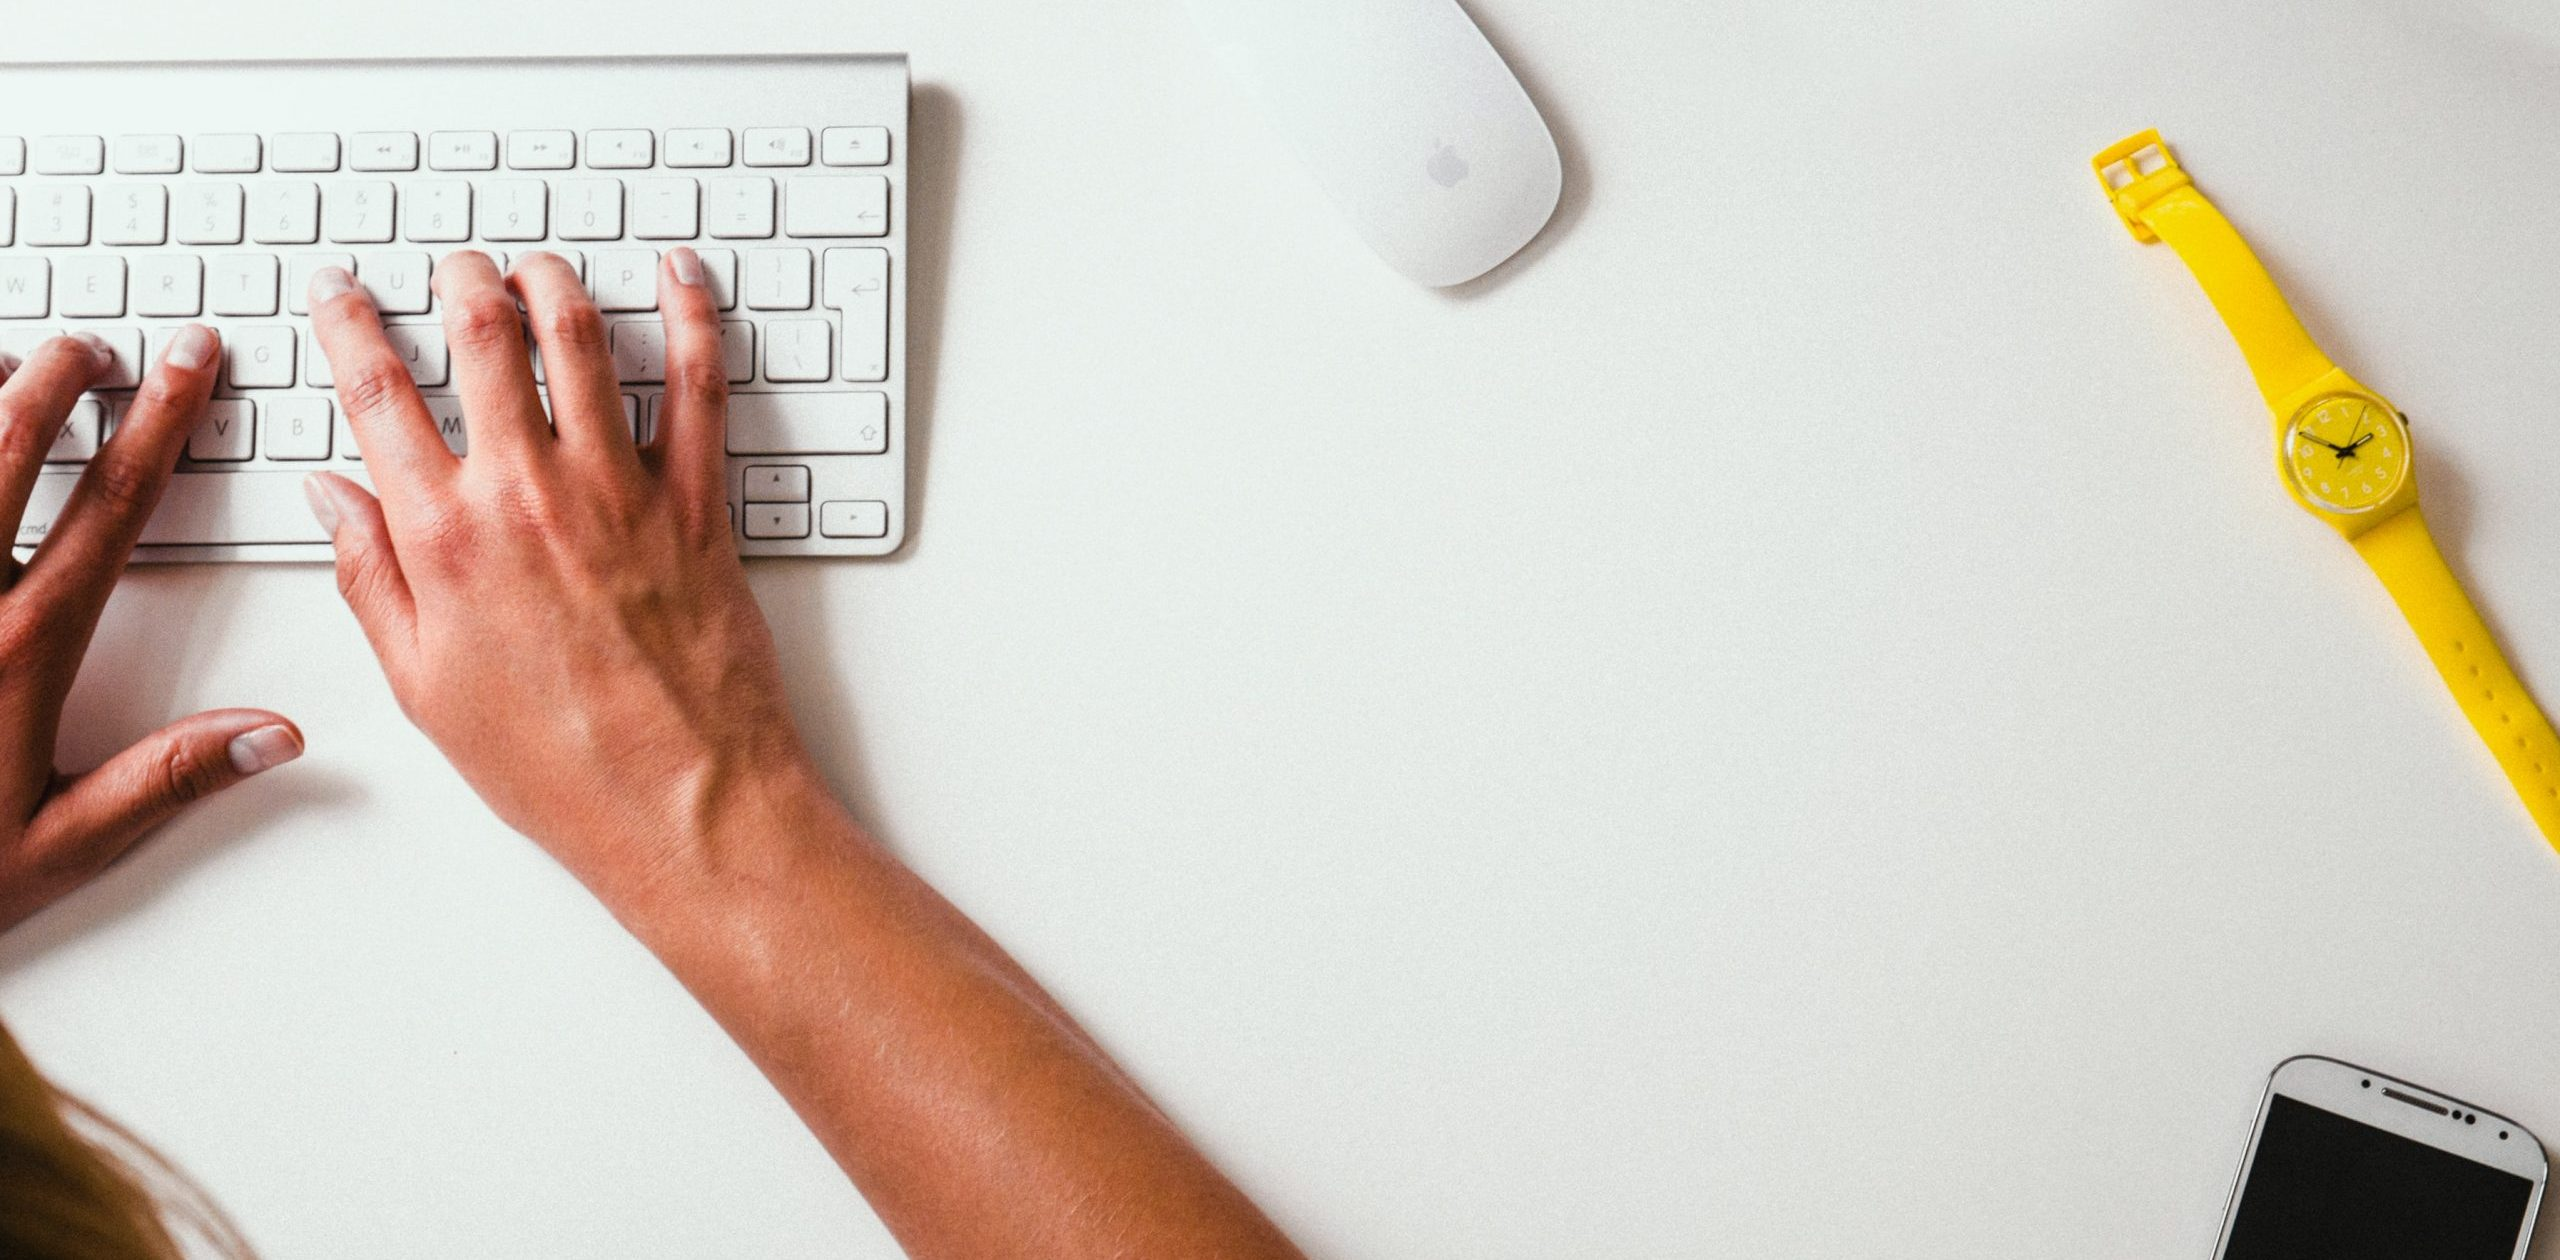 Image of person typing on keyboard